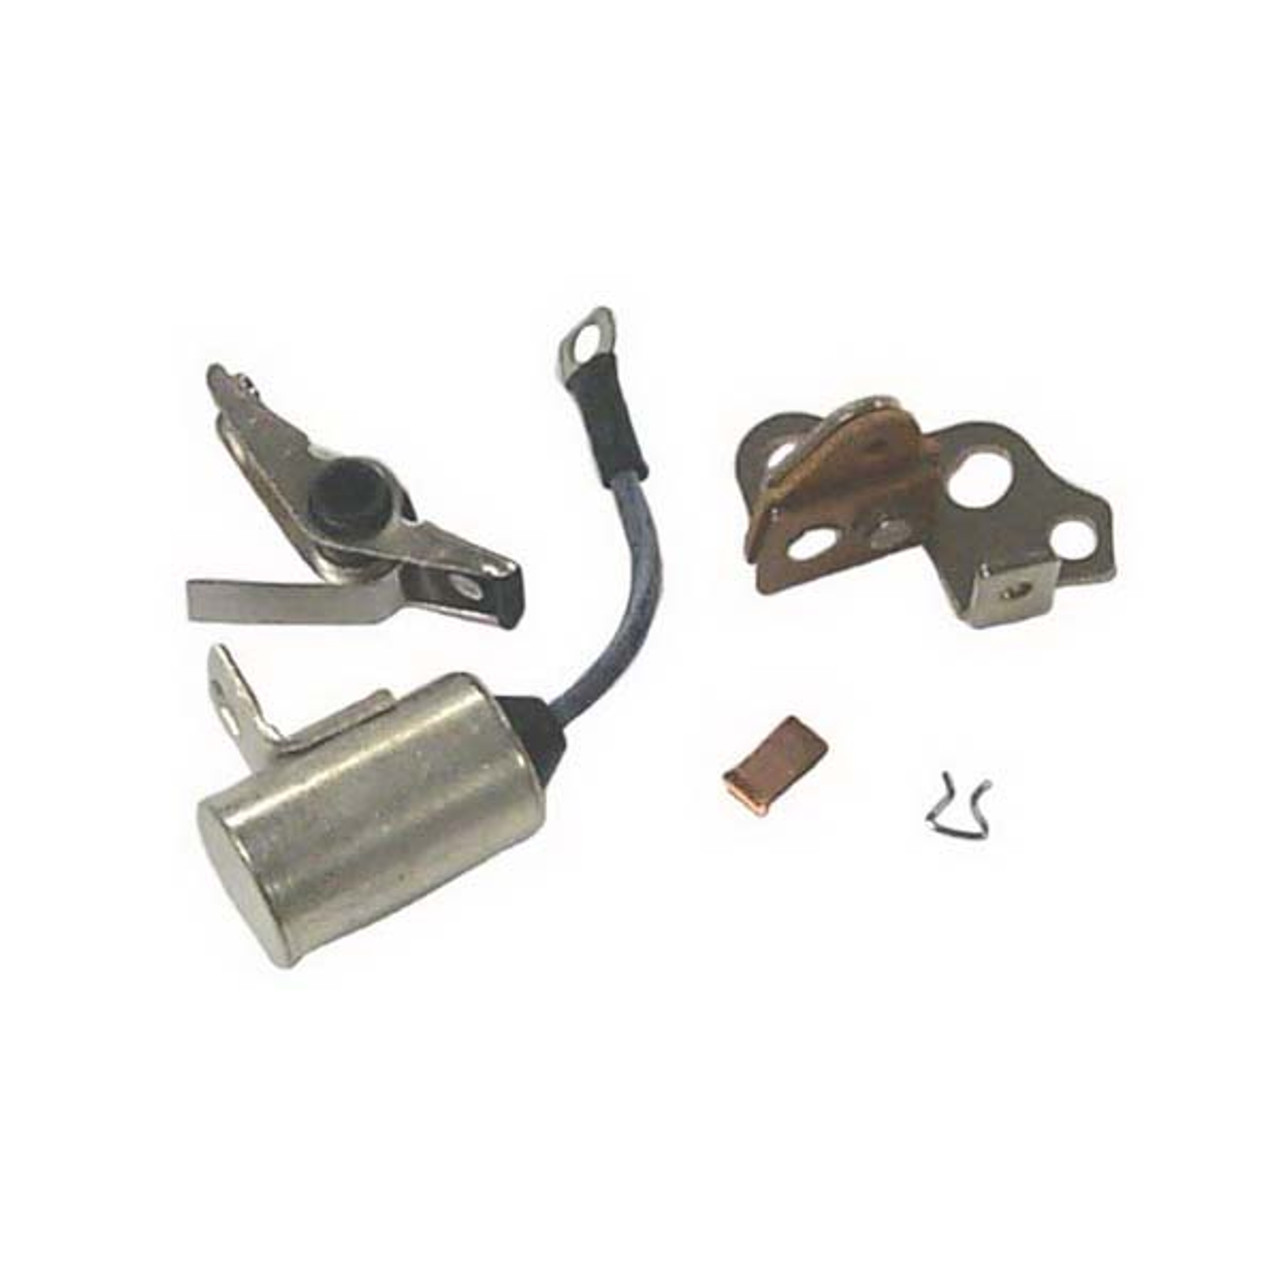 Tune Up Prices >> Sierra 18 5011 Tune Up Kit Replaces 0172521